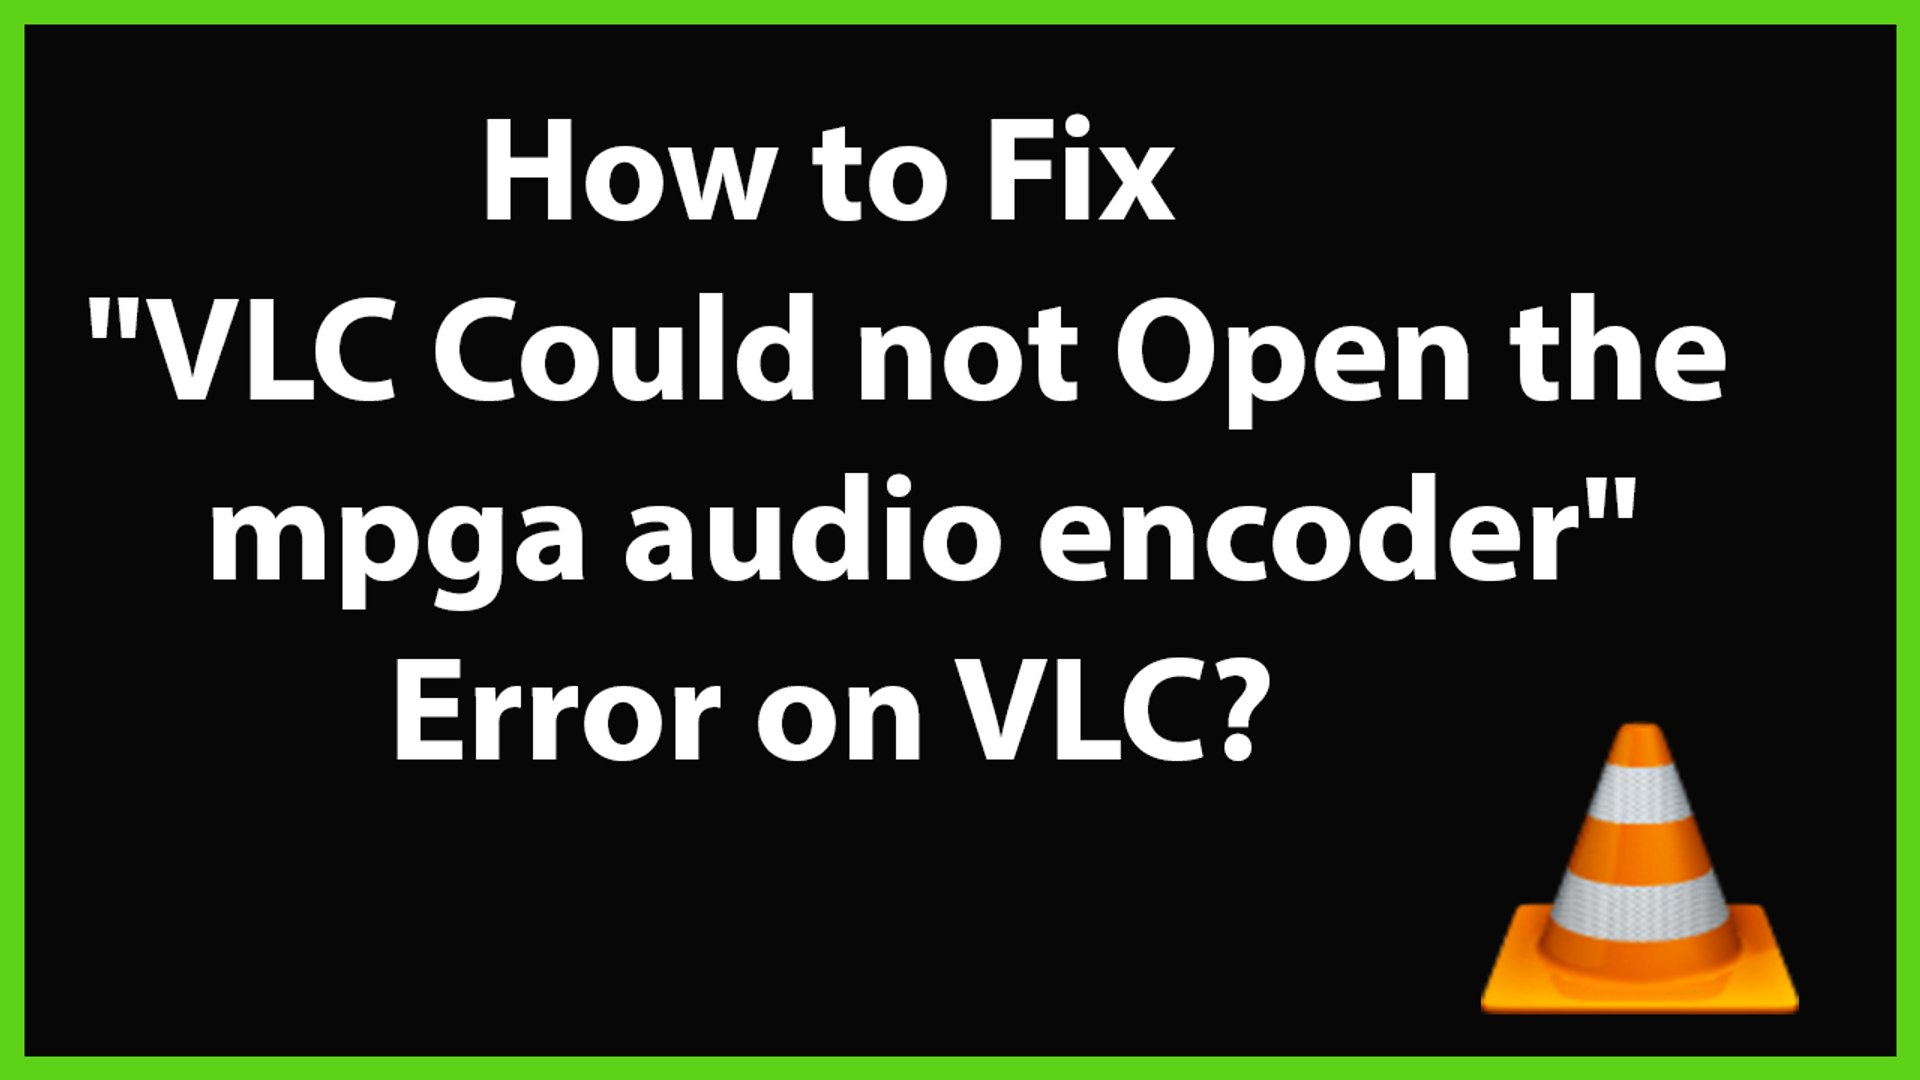 How to Fix VLC Could not Open the mpga audio encoder Error on VLC?